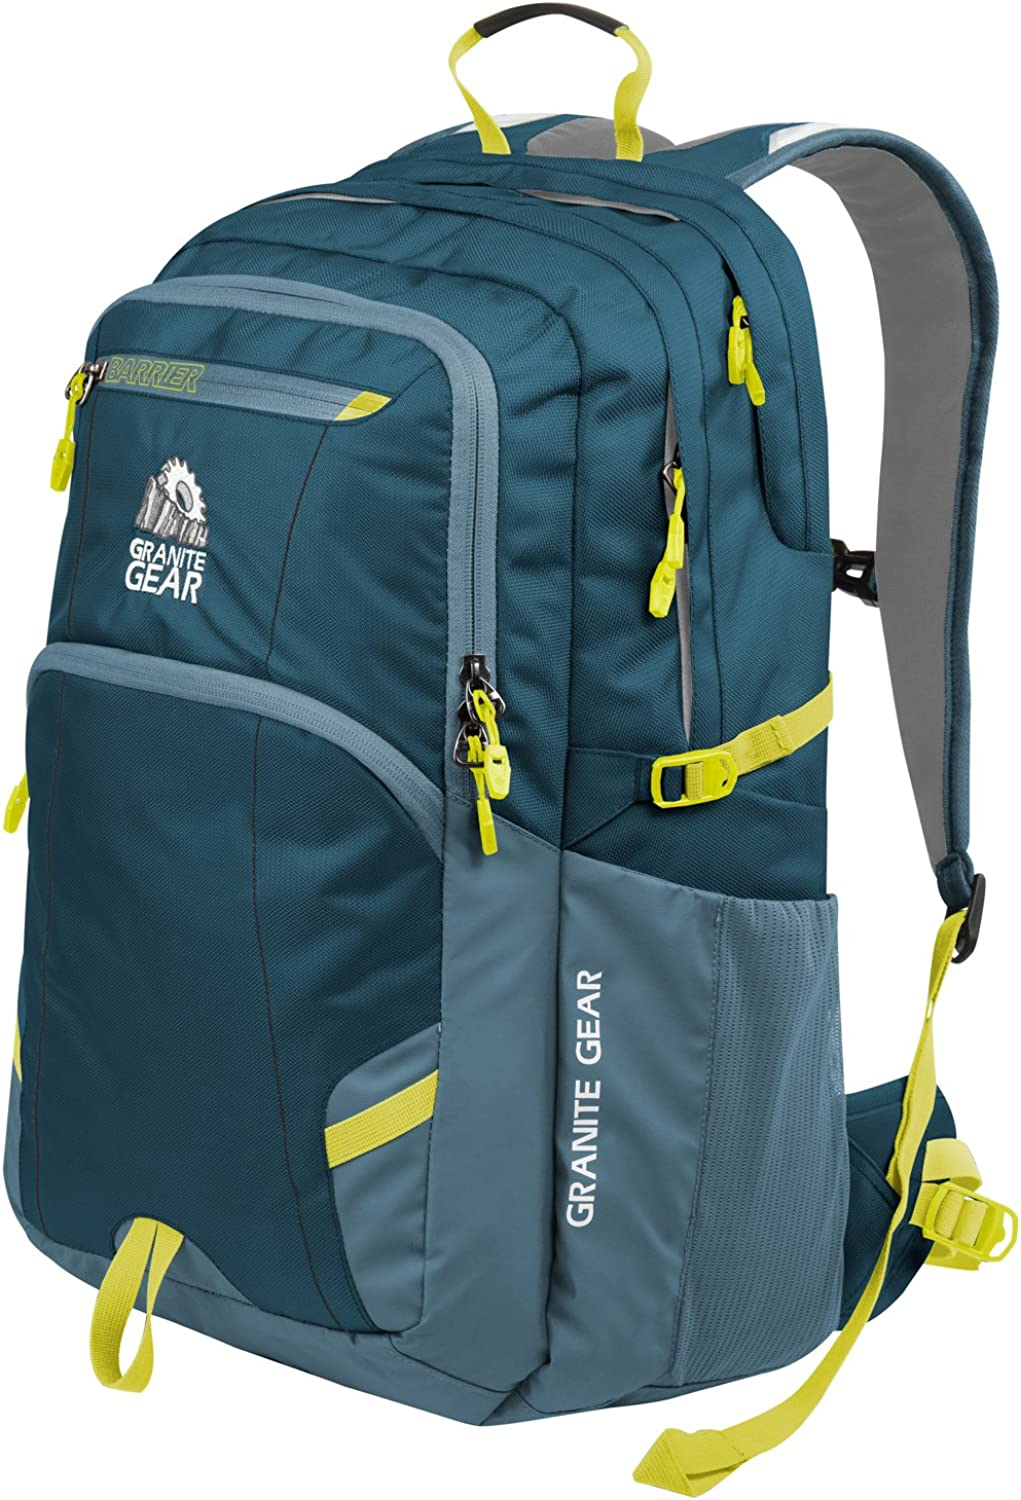 Granite Gear Campus Sawtooth Backpack